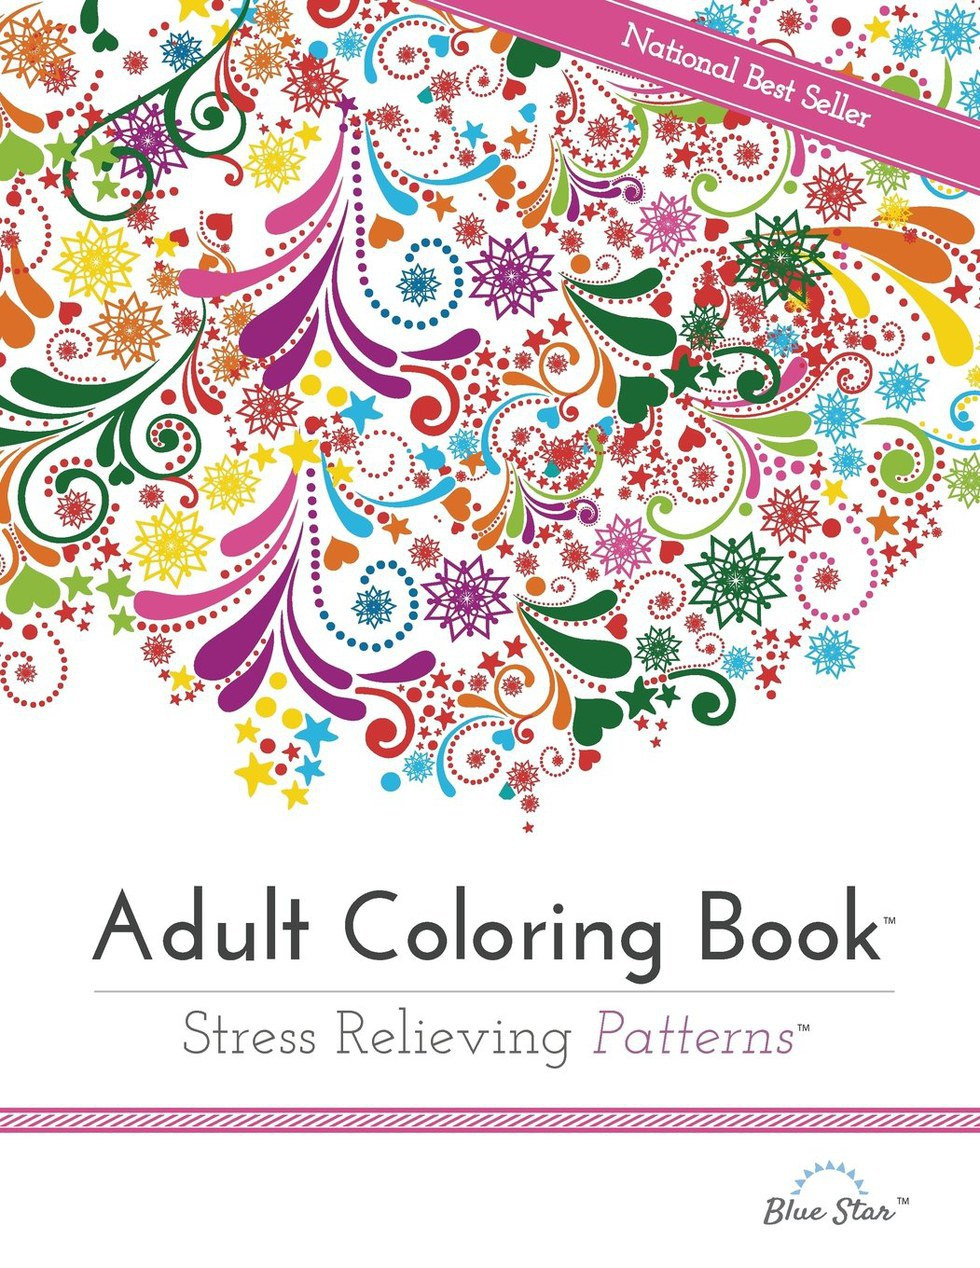 There Are Coloring Books For Adults So You Can Pretend Like Its A Textbook When Professor Asks What Doing And Less That 10 With Amazon